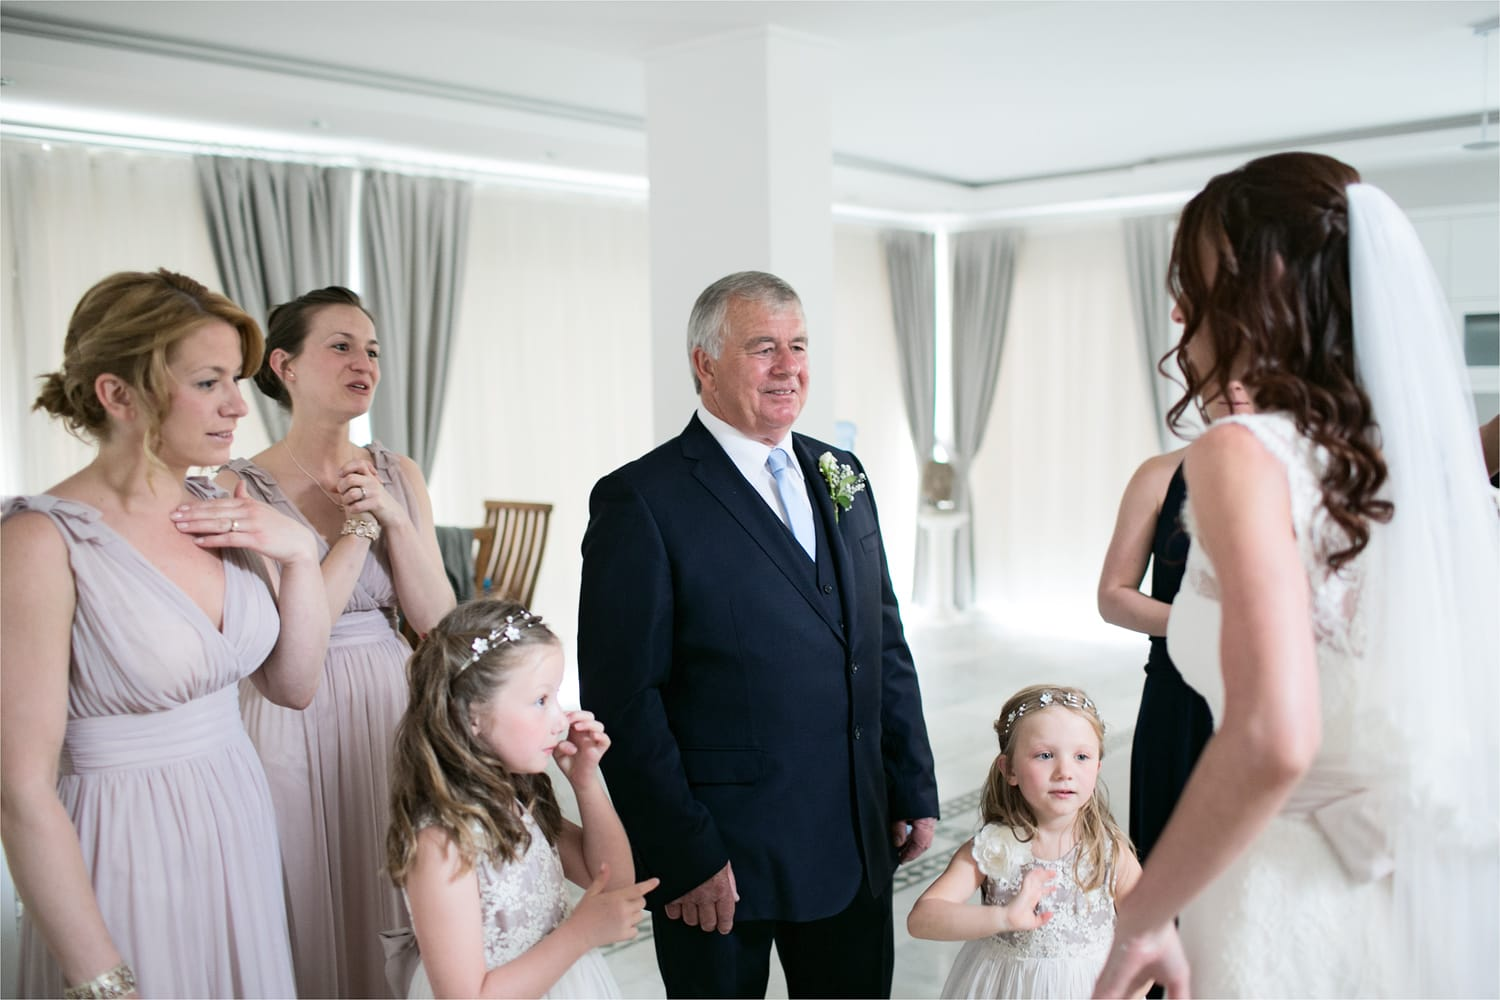 my kind of image: father of the bride